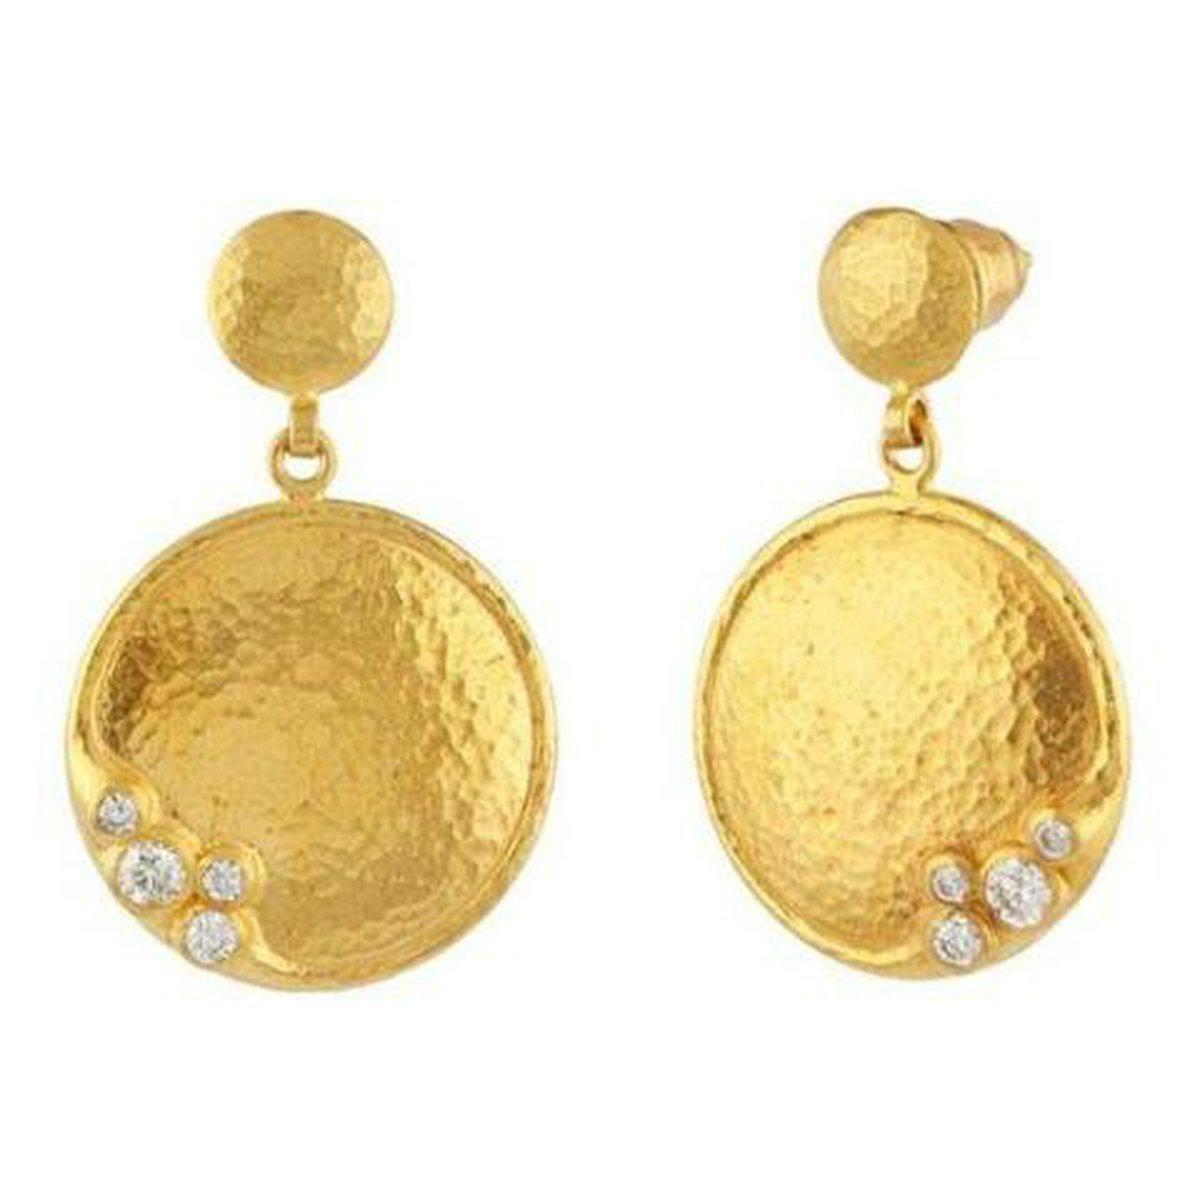 Pointelle 22K Gold White Diamond Earrings - LTE-SCTDI-RD-S-SO-GURHAN-Renee Taylor Gallery